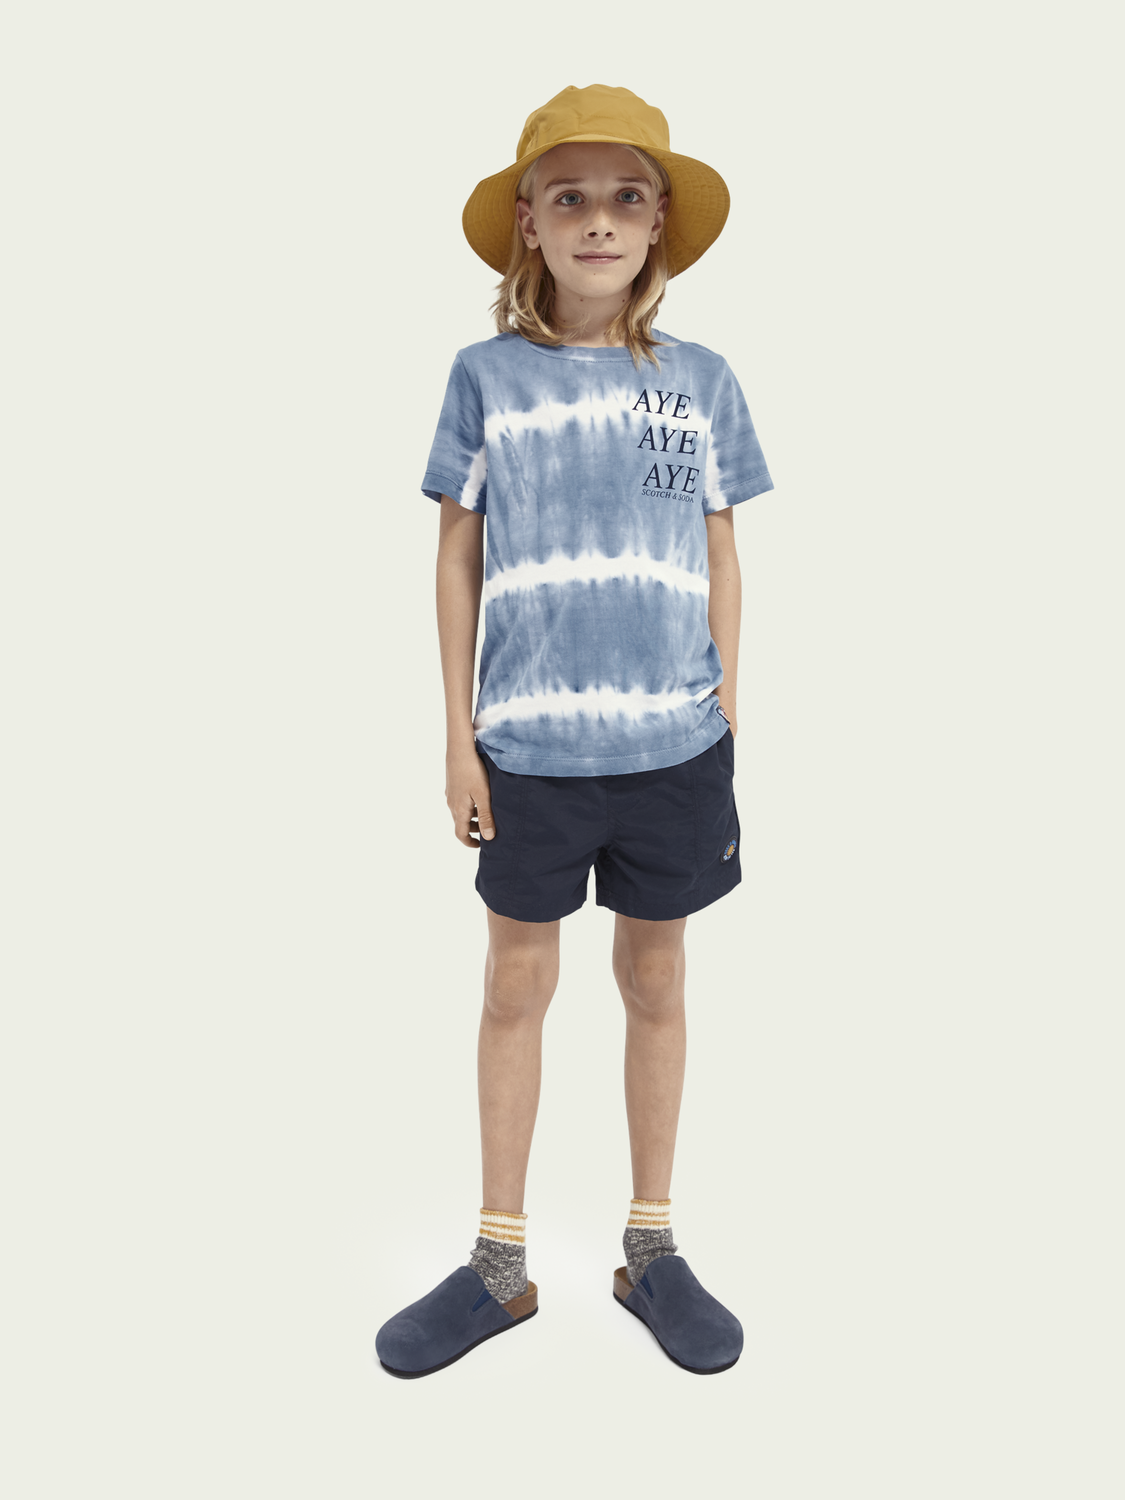 Kids Tie-dye short-sleeved organic cotton T-shirt